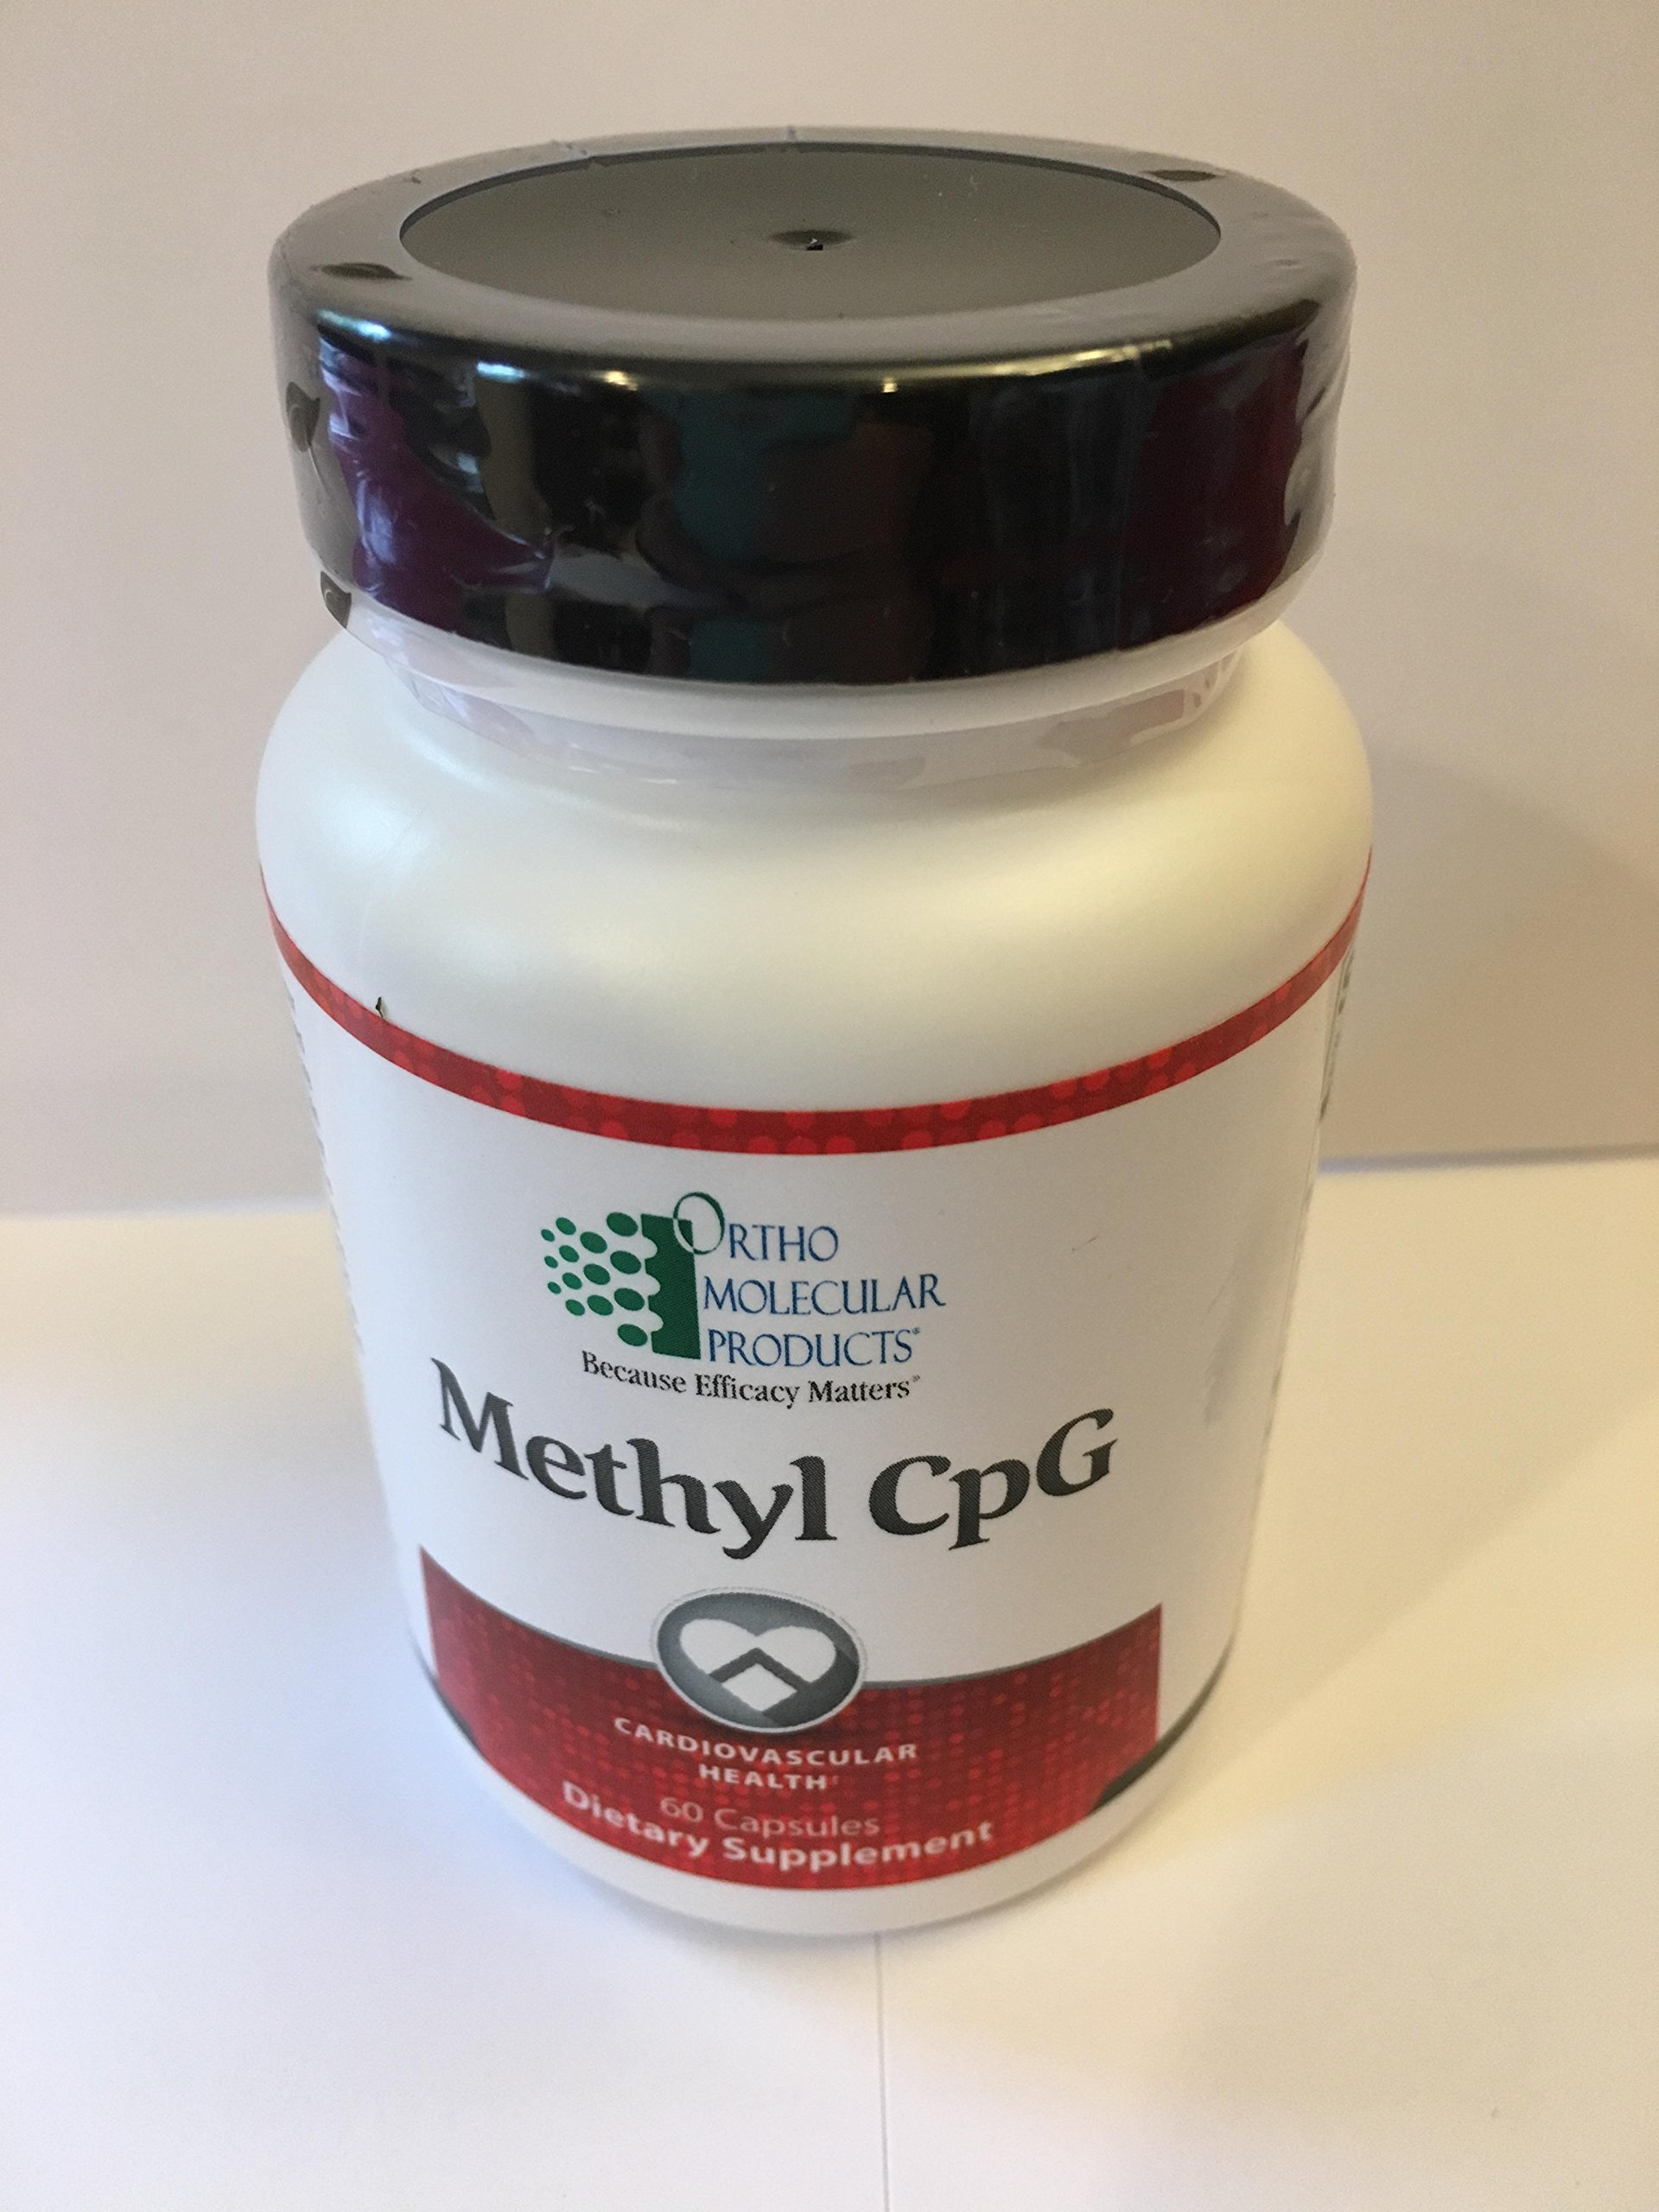 Ortho Molecular - Methyl CPG - 60 Capsules